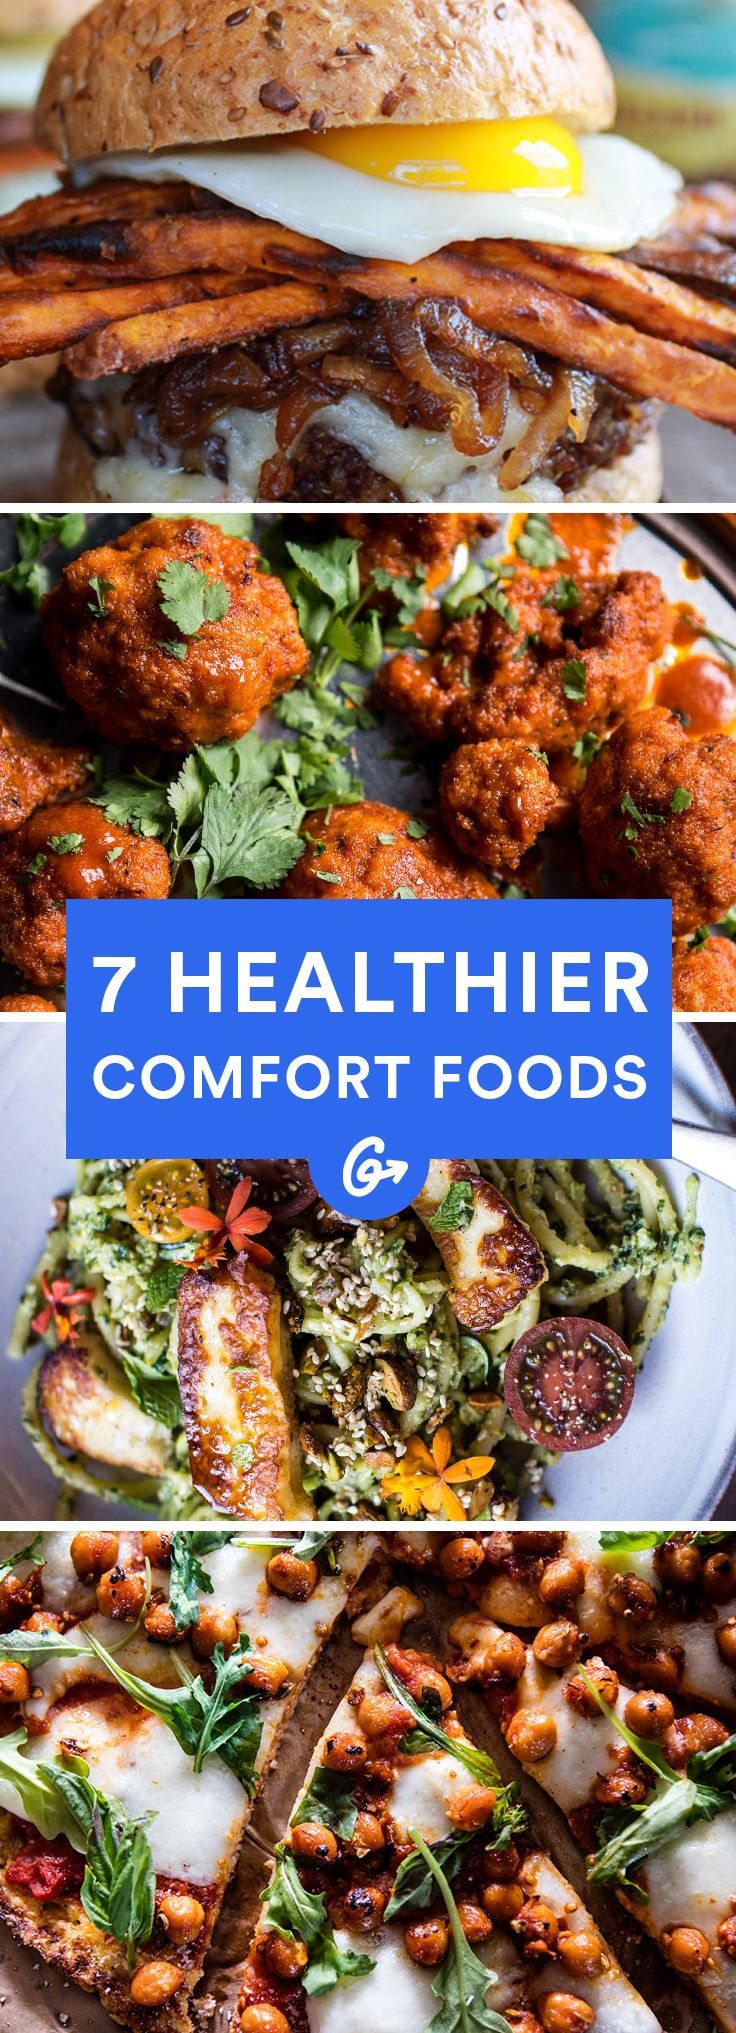 Best 25 night food delivery ideas on pinterest easy family 7 healthier comfort foods that are next level good forumfinder Image collections